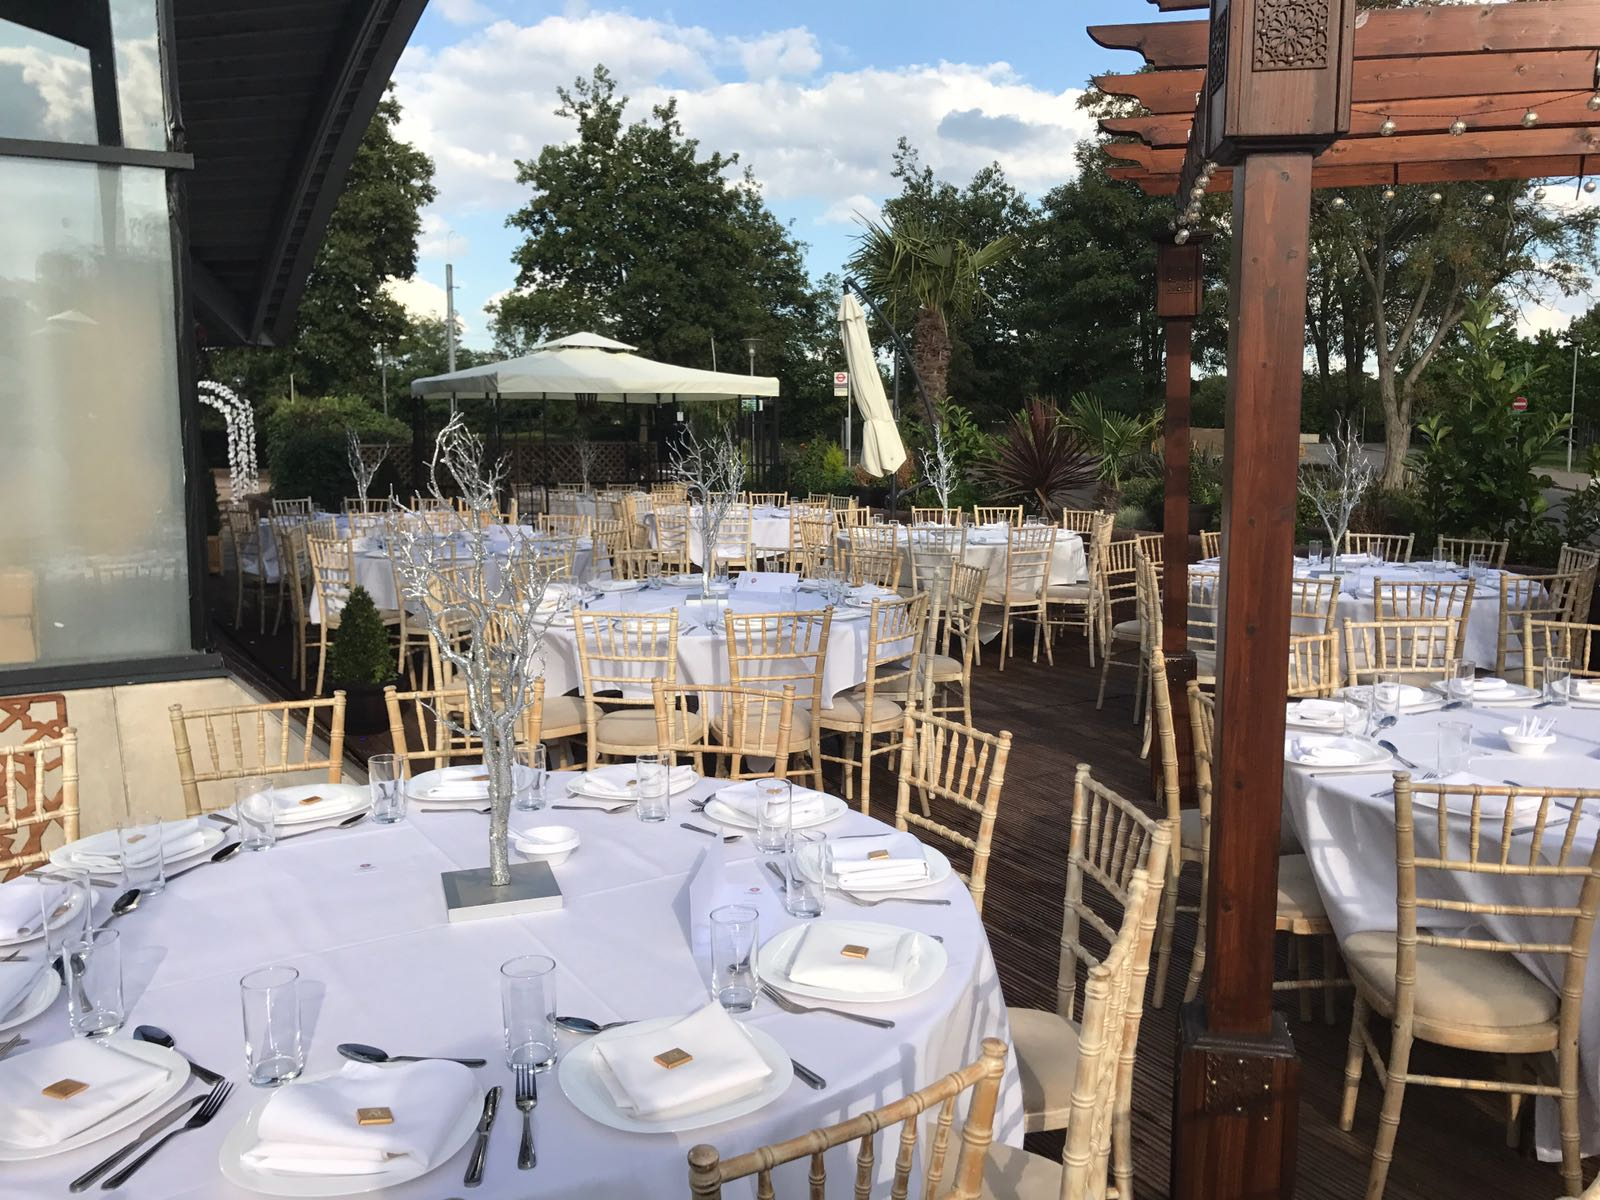 Wedding and Events Venue in North London with more car park spaces at no additional costs.